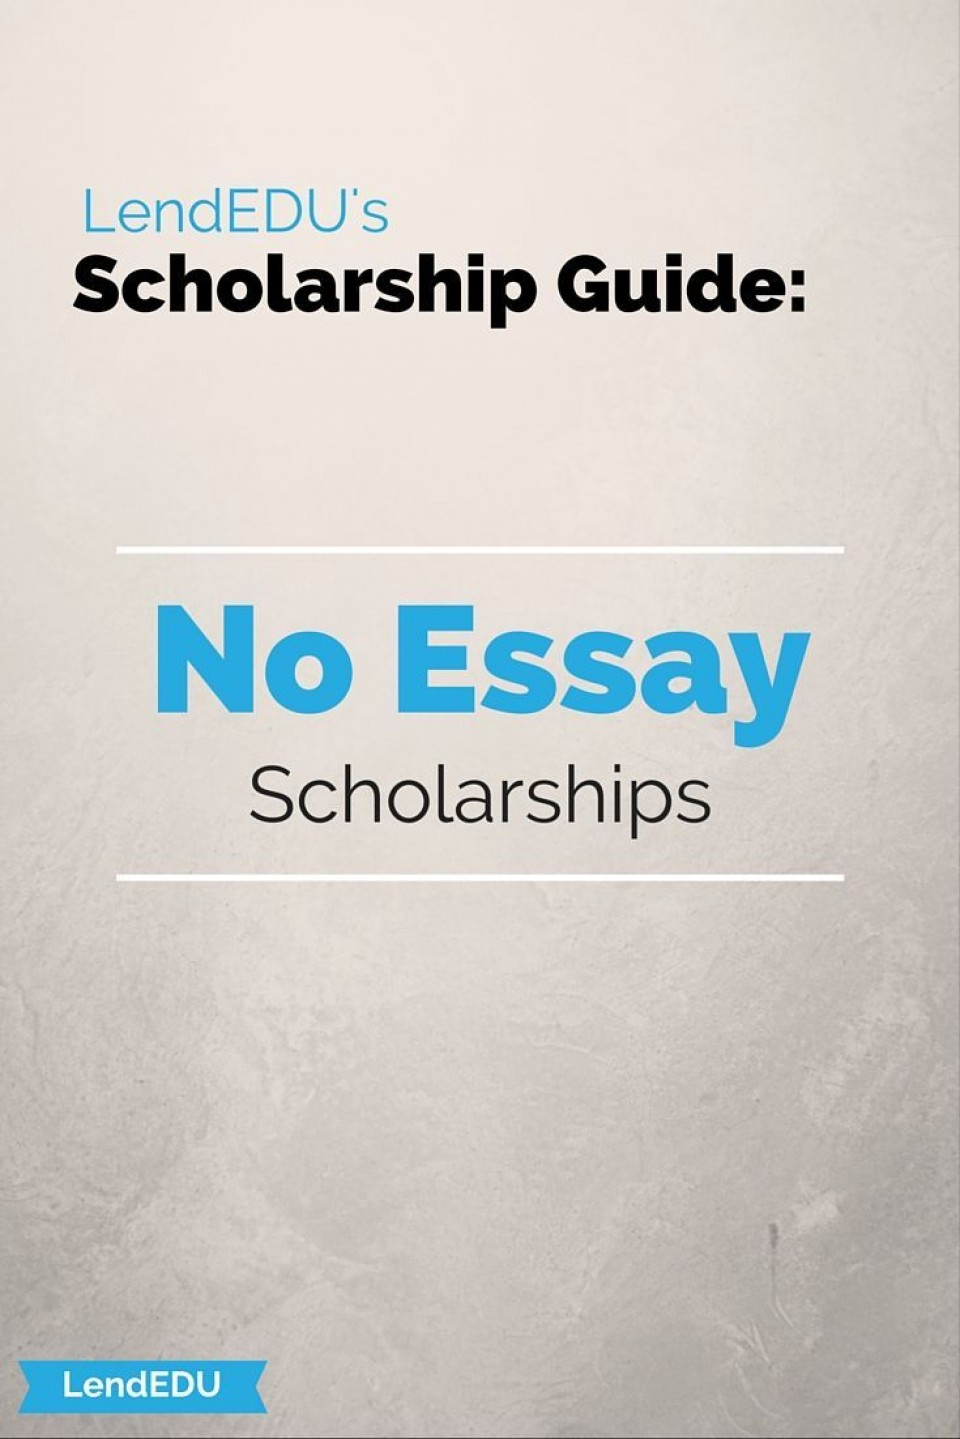 018 No Essay Scholarships Example Exceptional December 2018 For Undergraduates 960